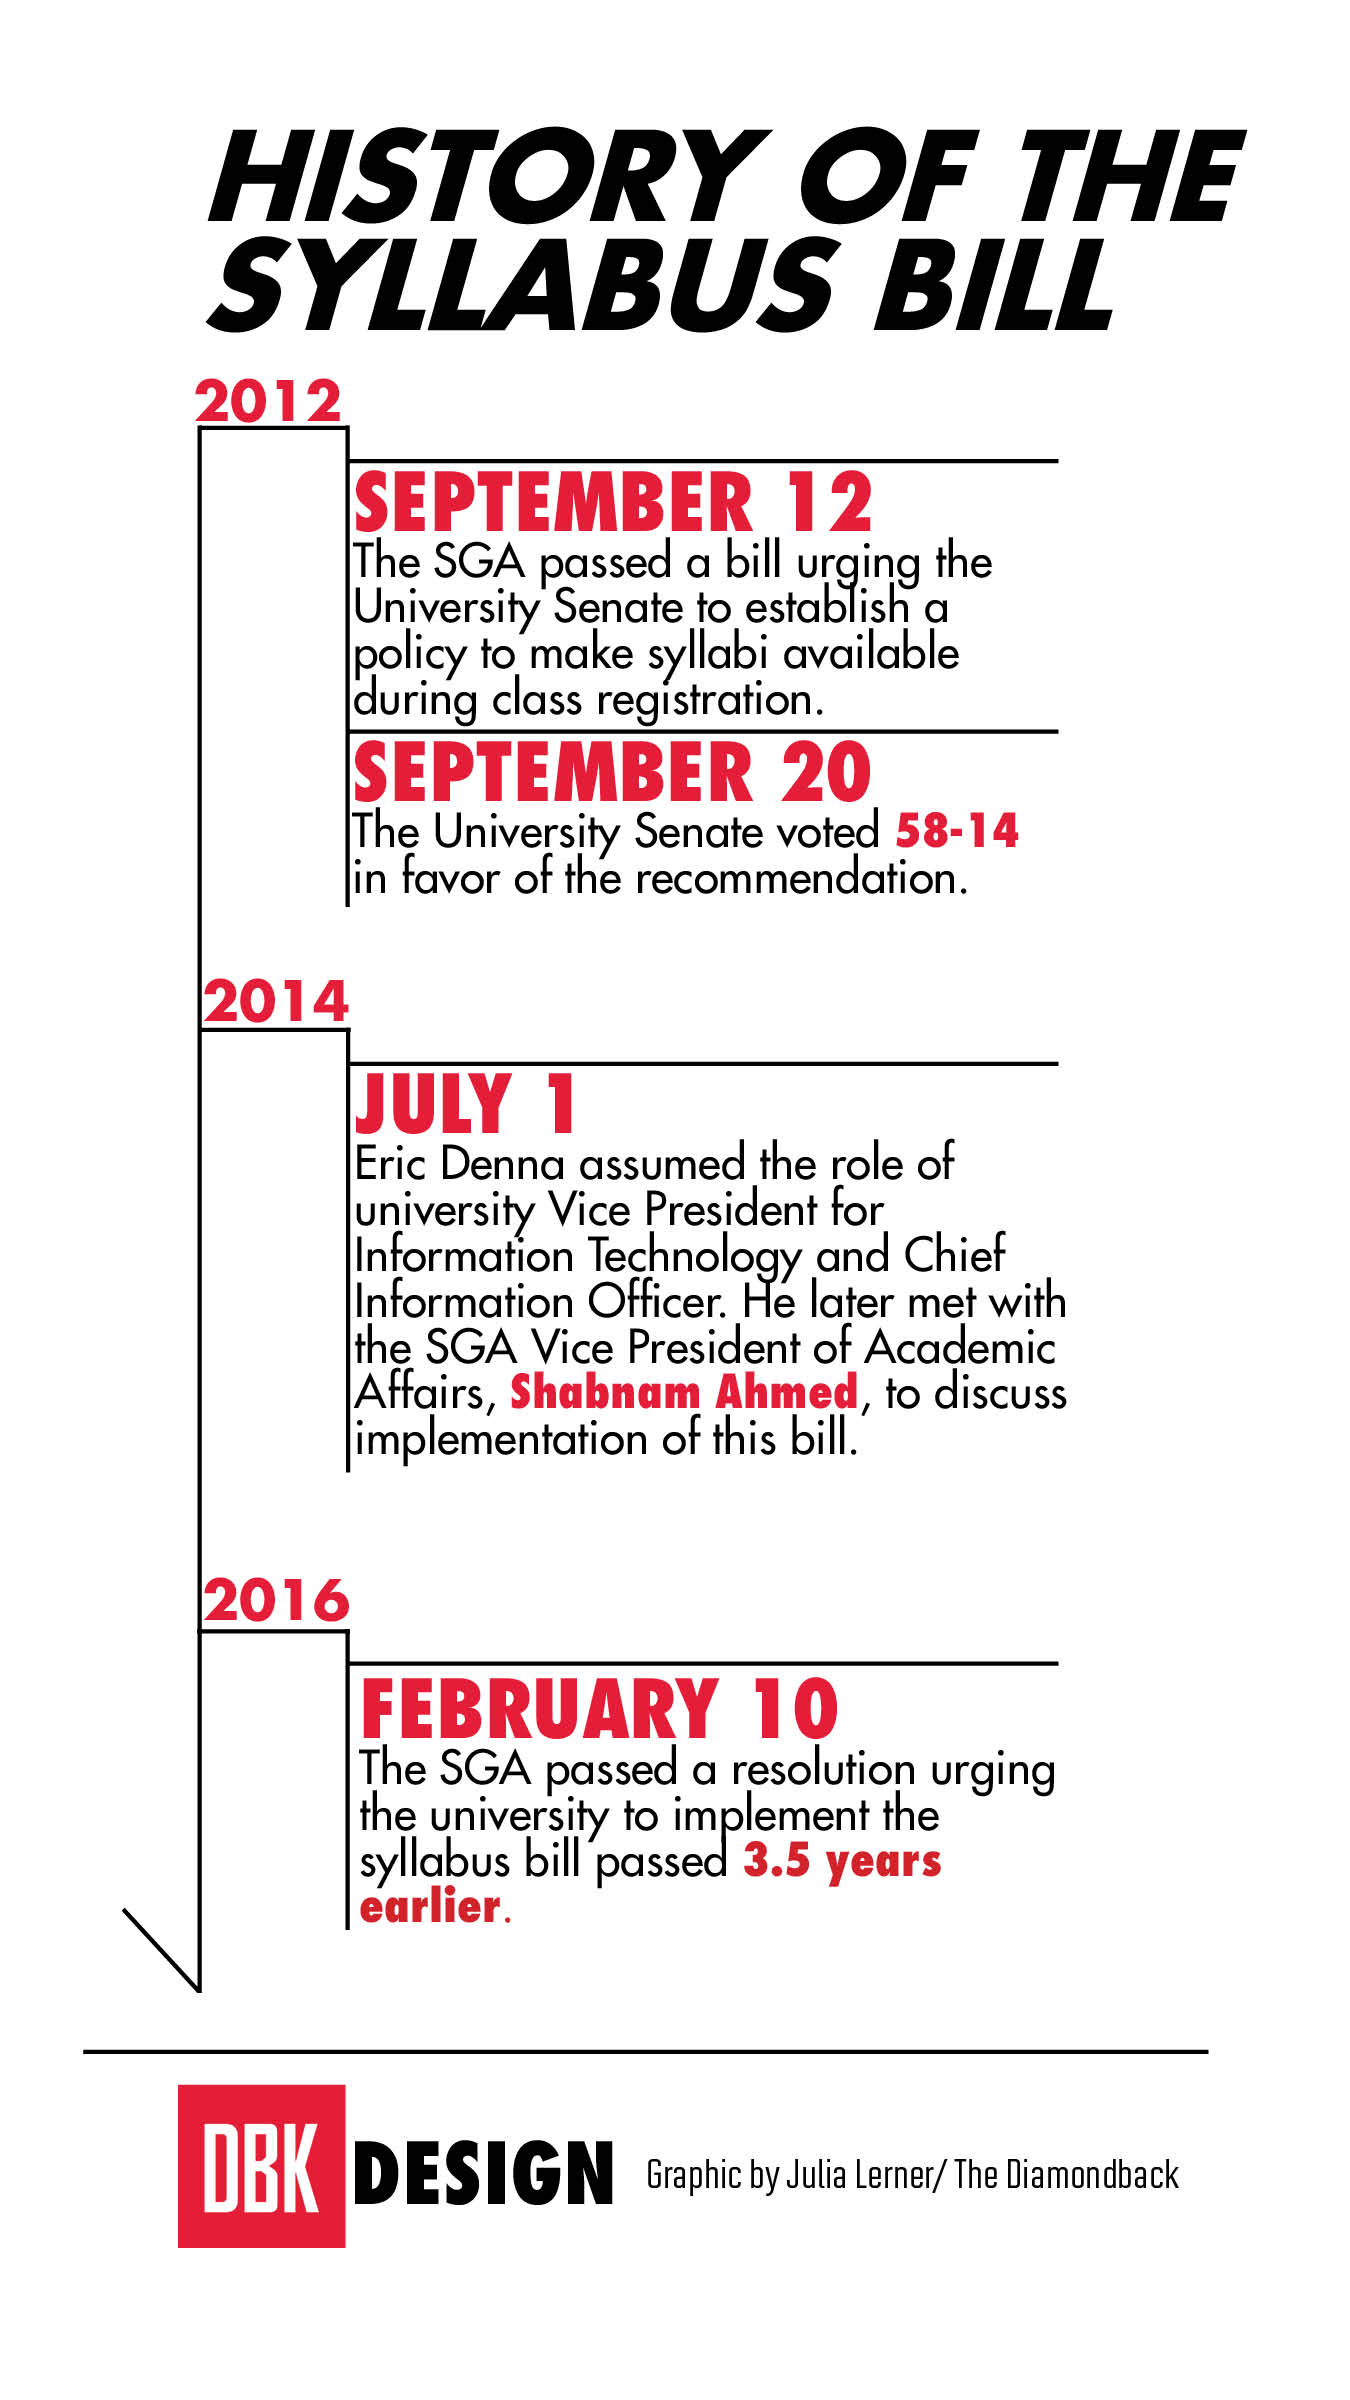 SGA passes resolution to revive 2012 syllabus bill - The Diamondback